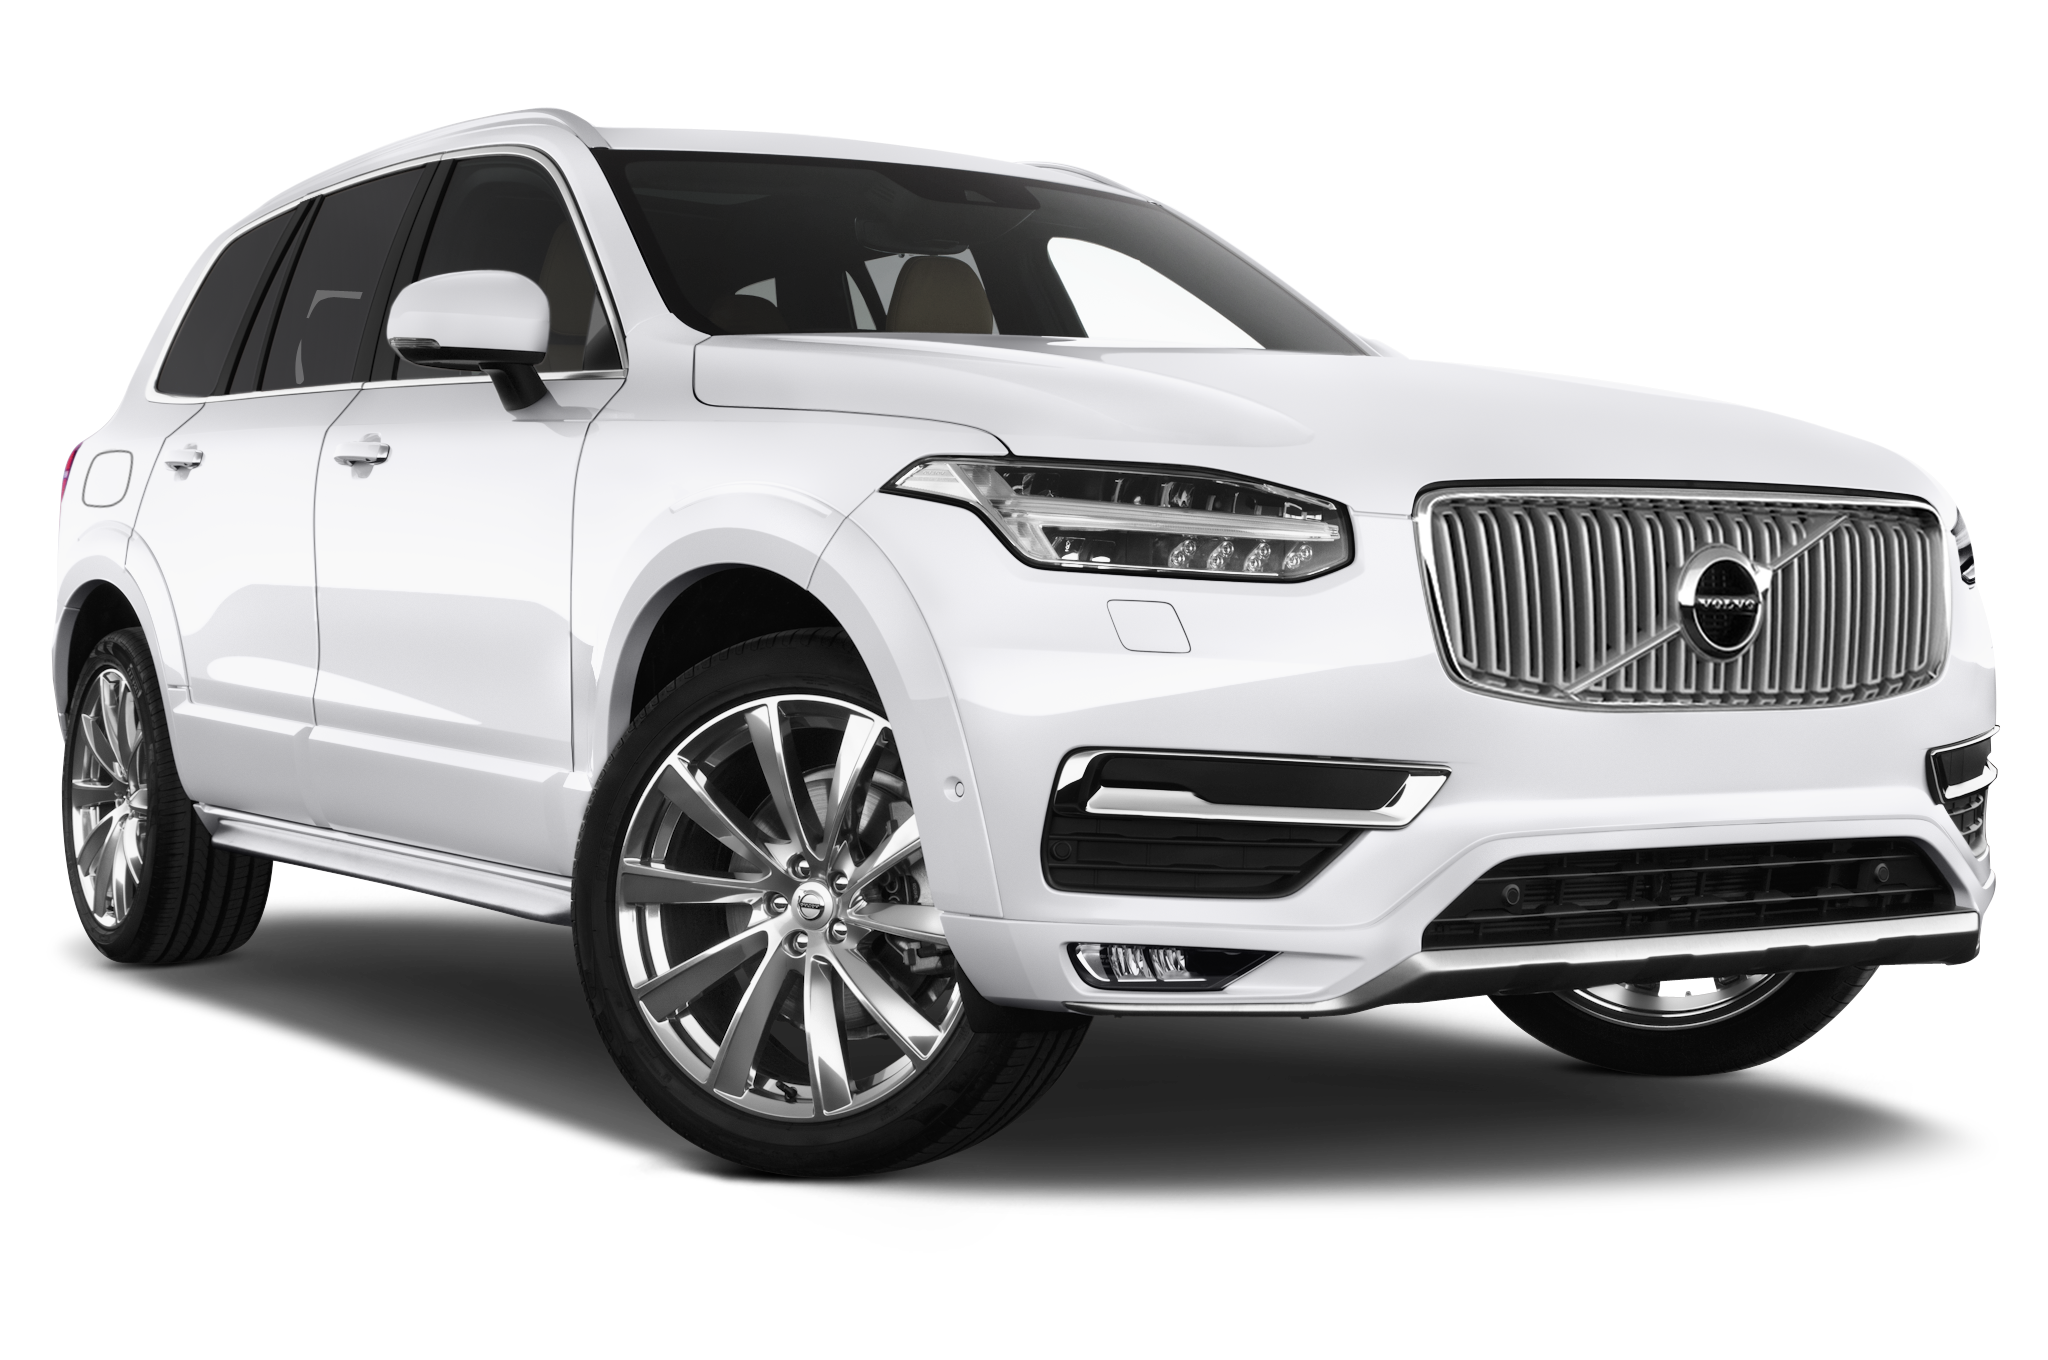 Volvo Transparent Images PNG.